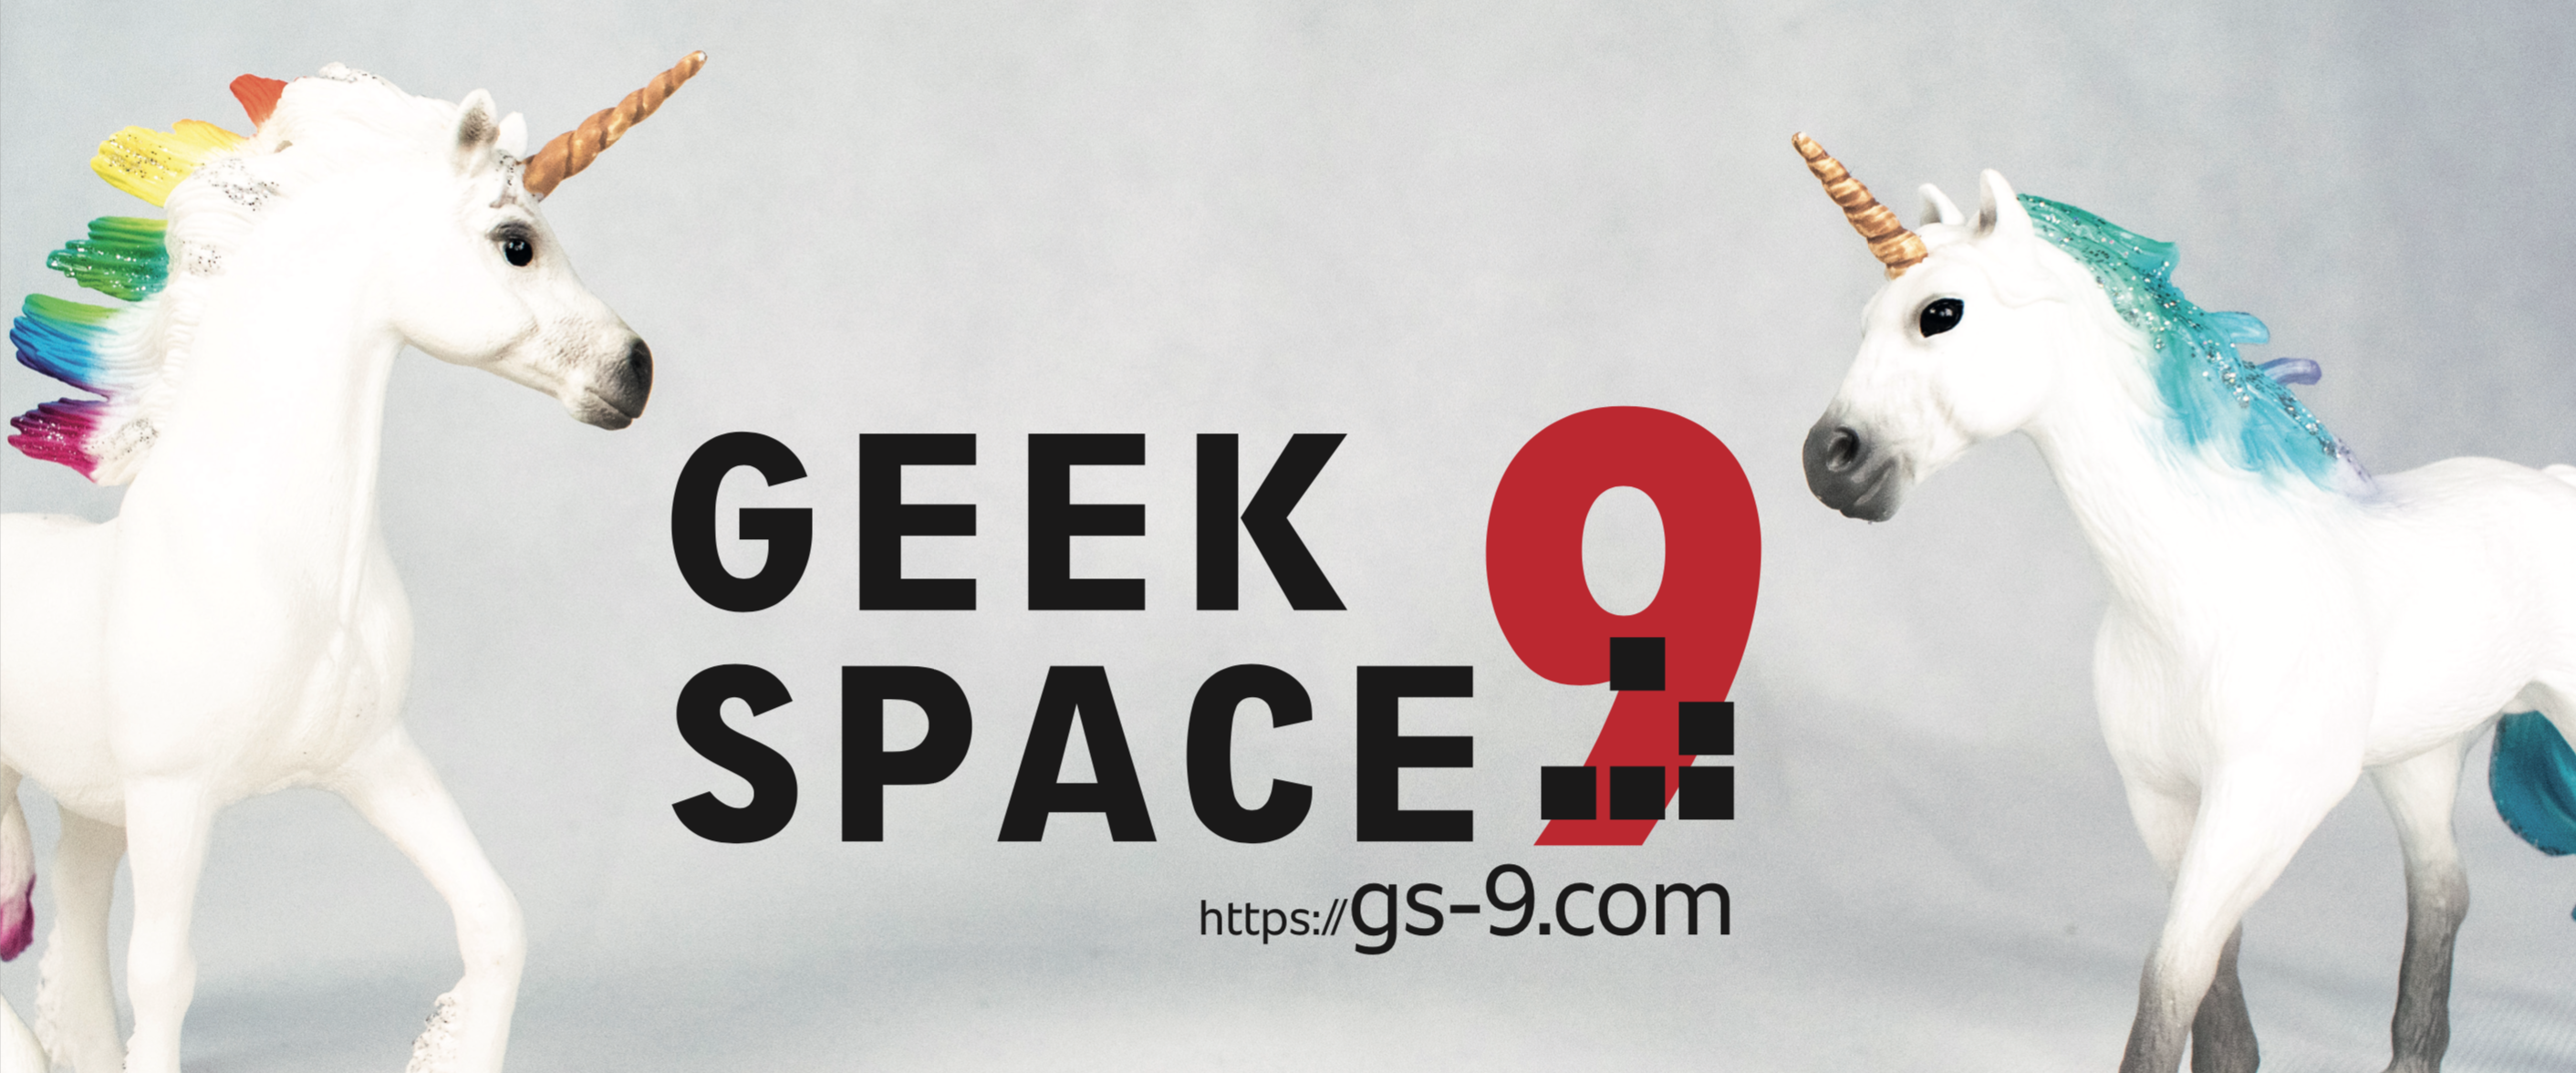 We're Hiring! Come Join Our Team! | Geek Space 9